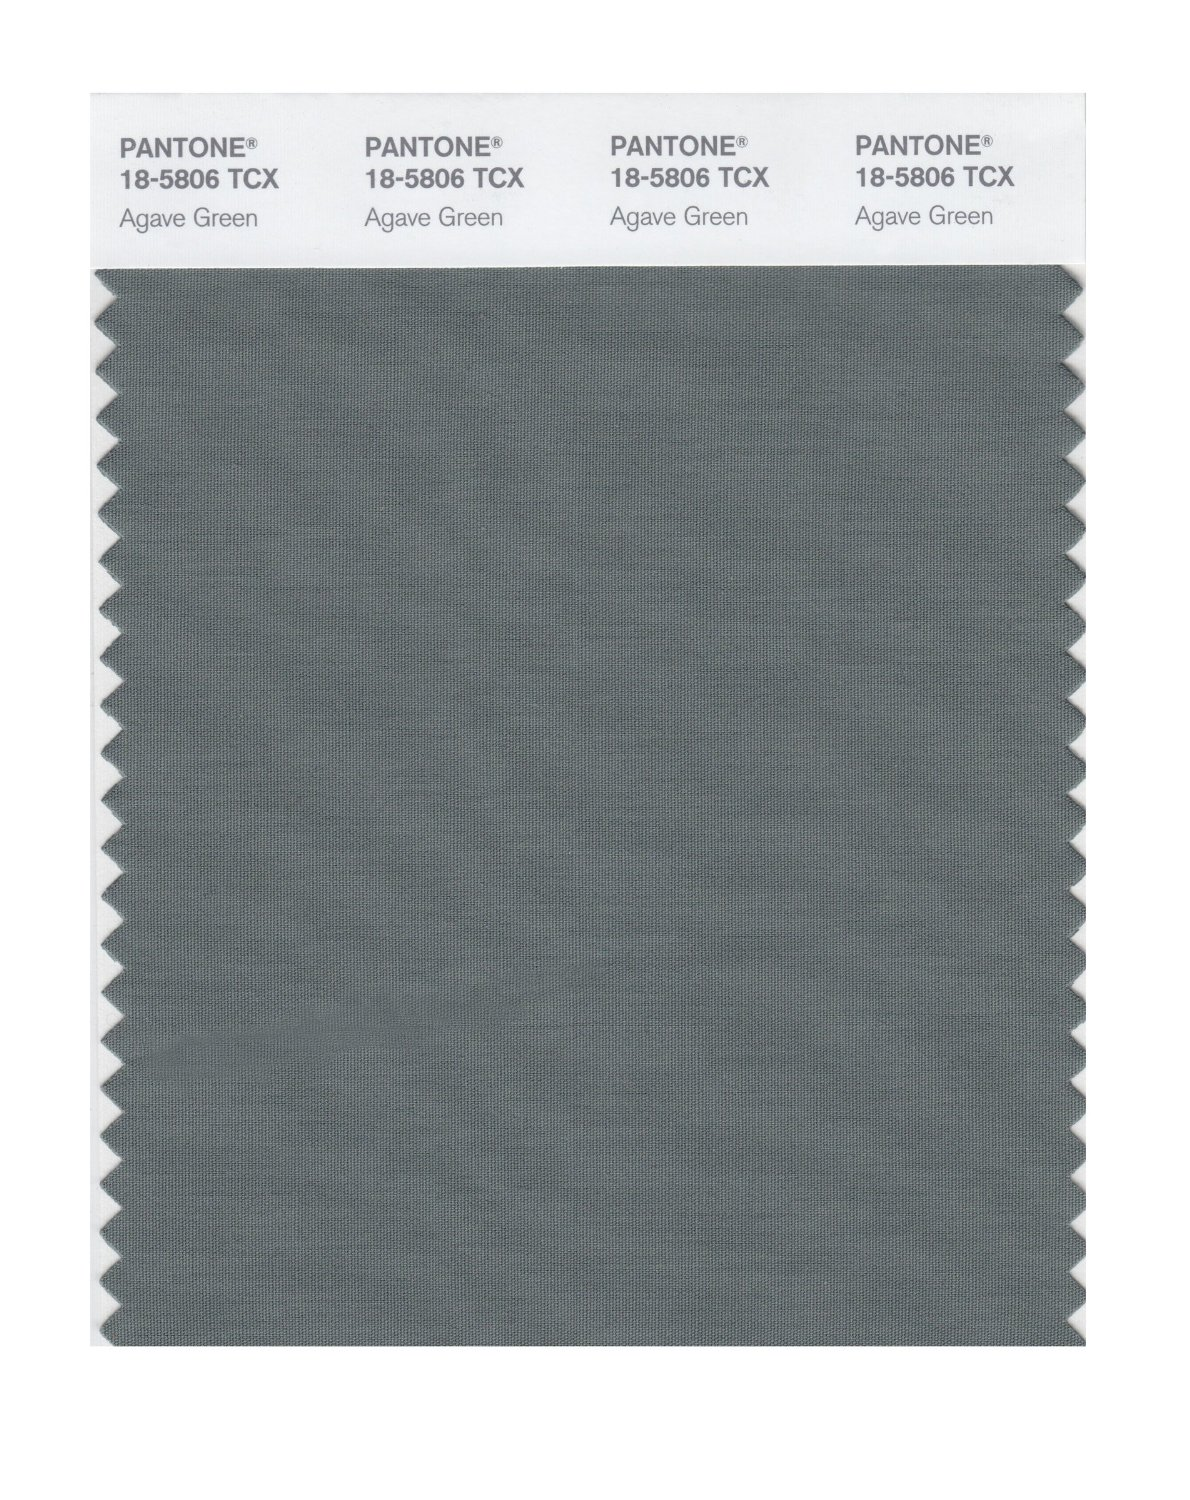 Pantone Smart Swatch 18-5806 Agave Green